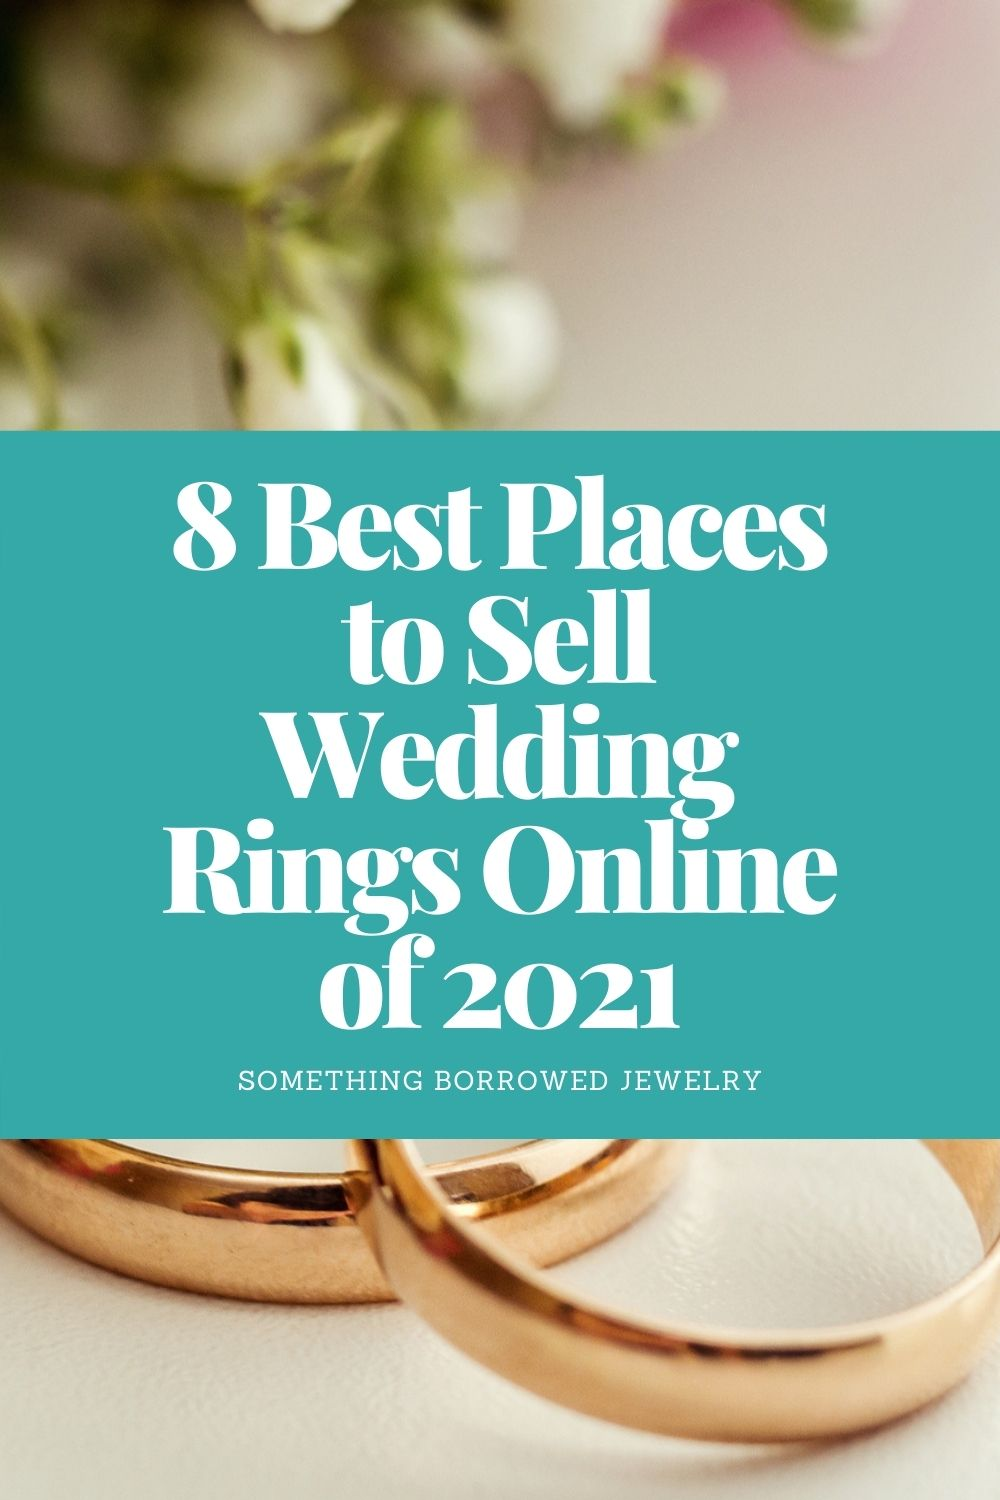 8 Best Places to Sell Wedding Rings Online of 2021 pin 2